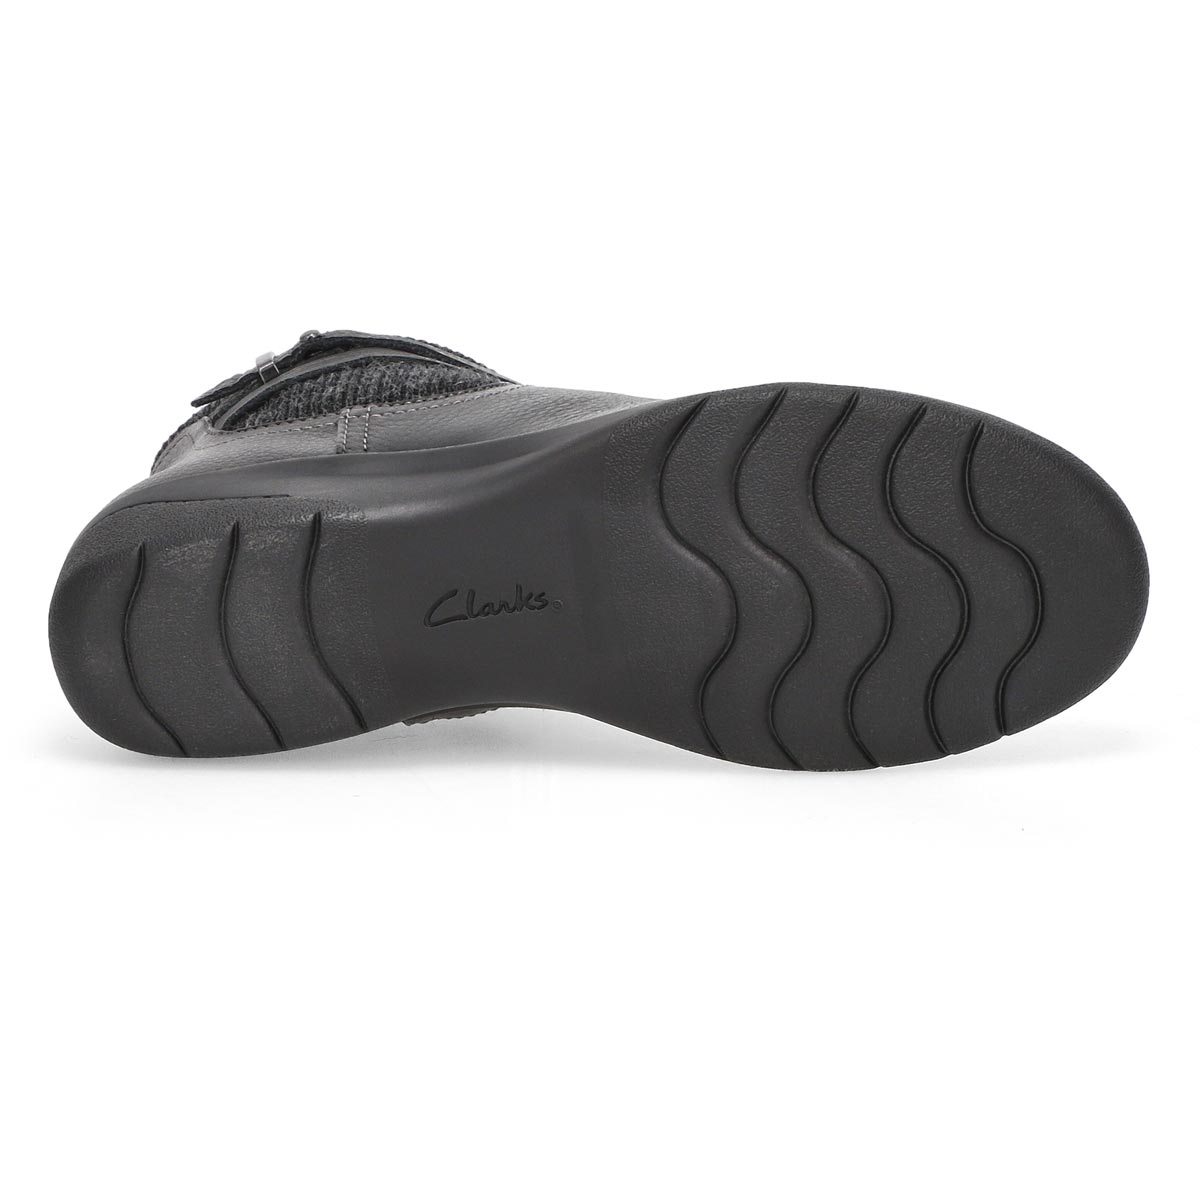 Lds Cheyn Kisha blk casual ankle boot